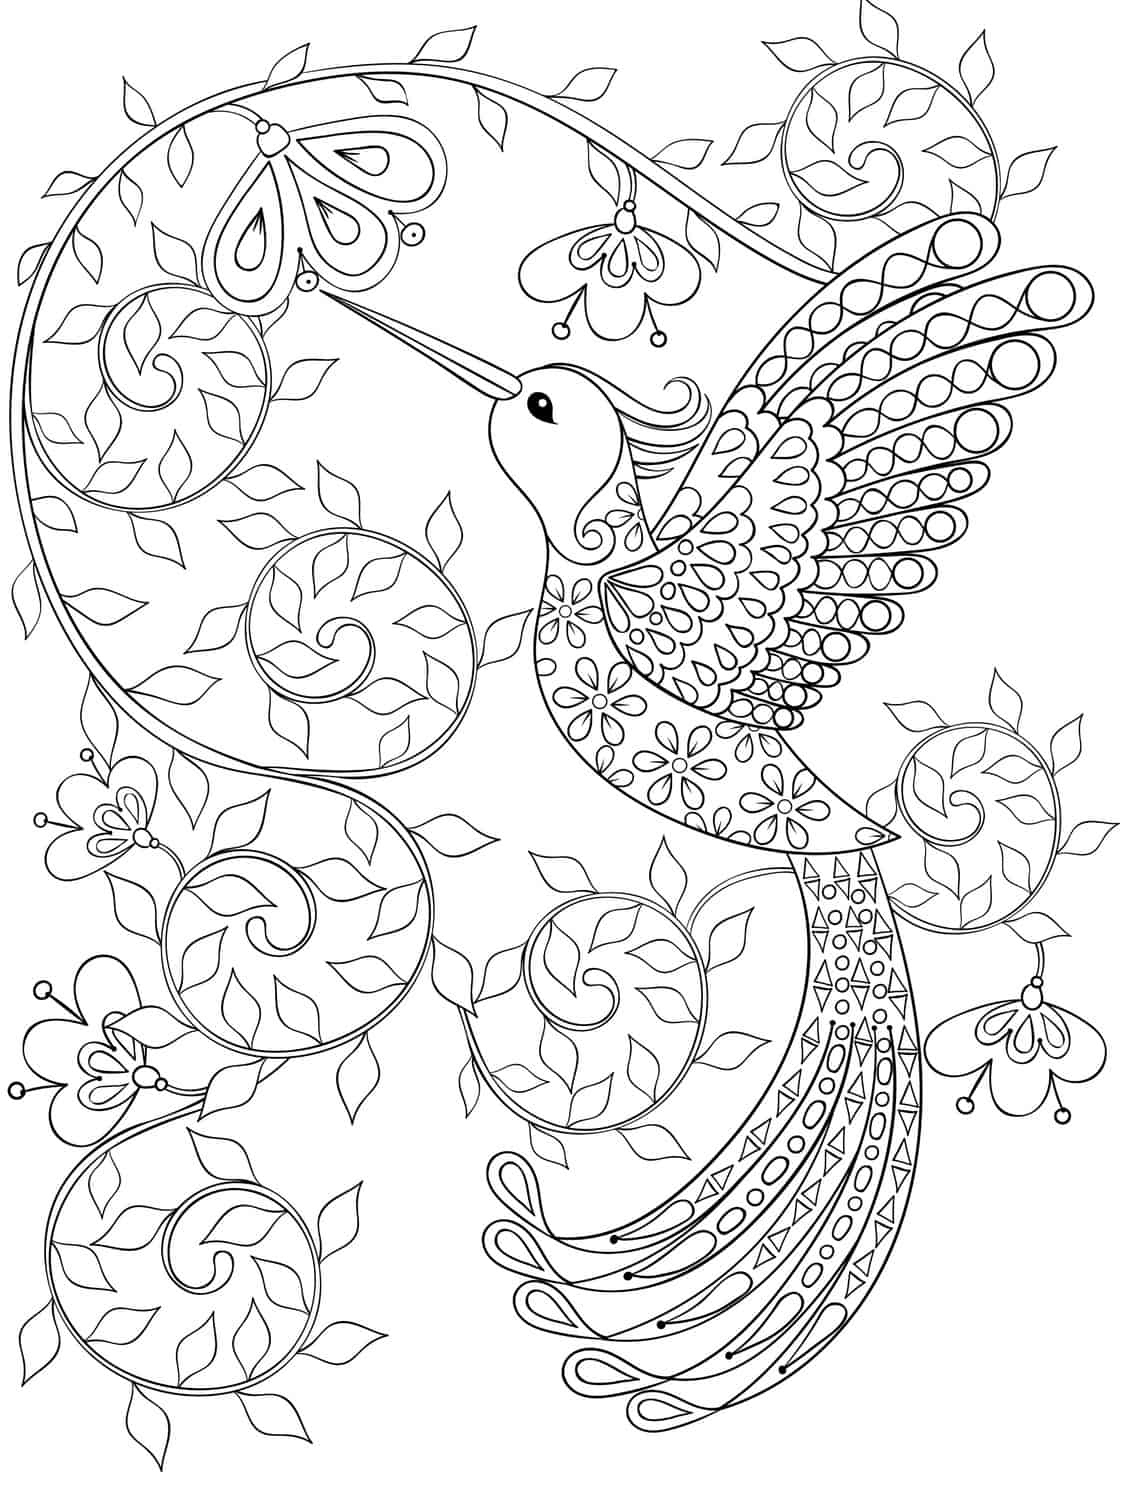 20 Gorgeous Free Printable Adult Coloring Pages Page 11 Free Printable Coloring Pages For Adults